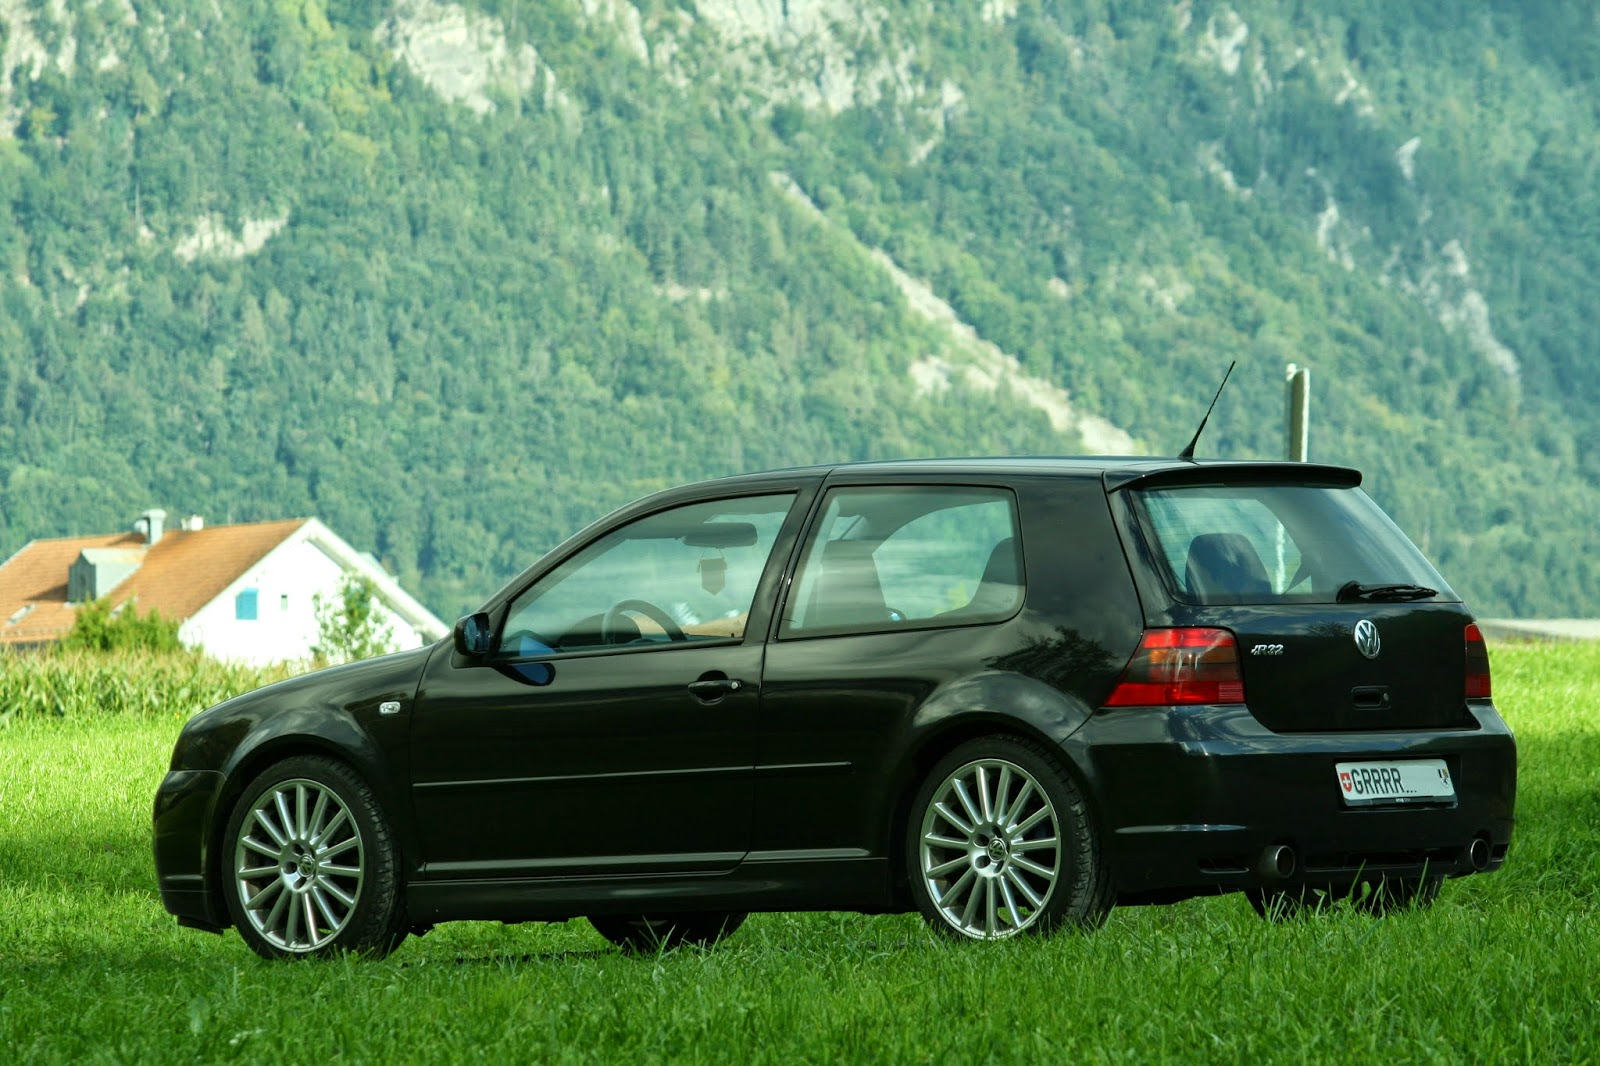 volkswagen golf iv r32 duck cars. Black Bedroom Furniture Sets. Home Design Ideas